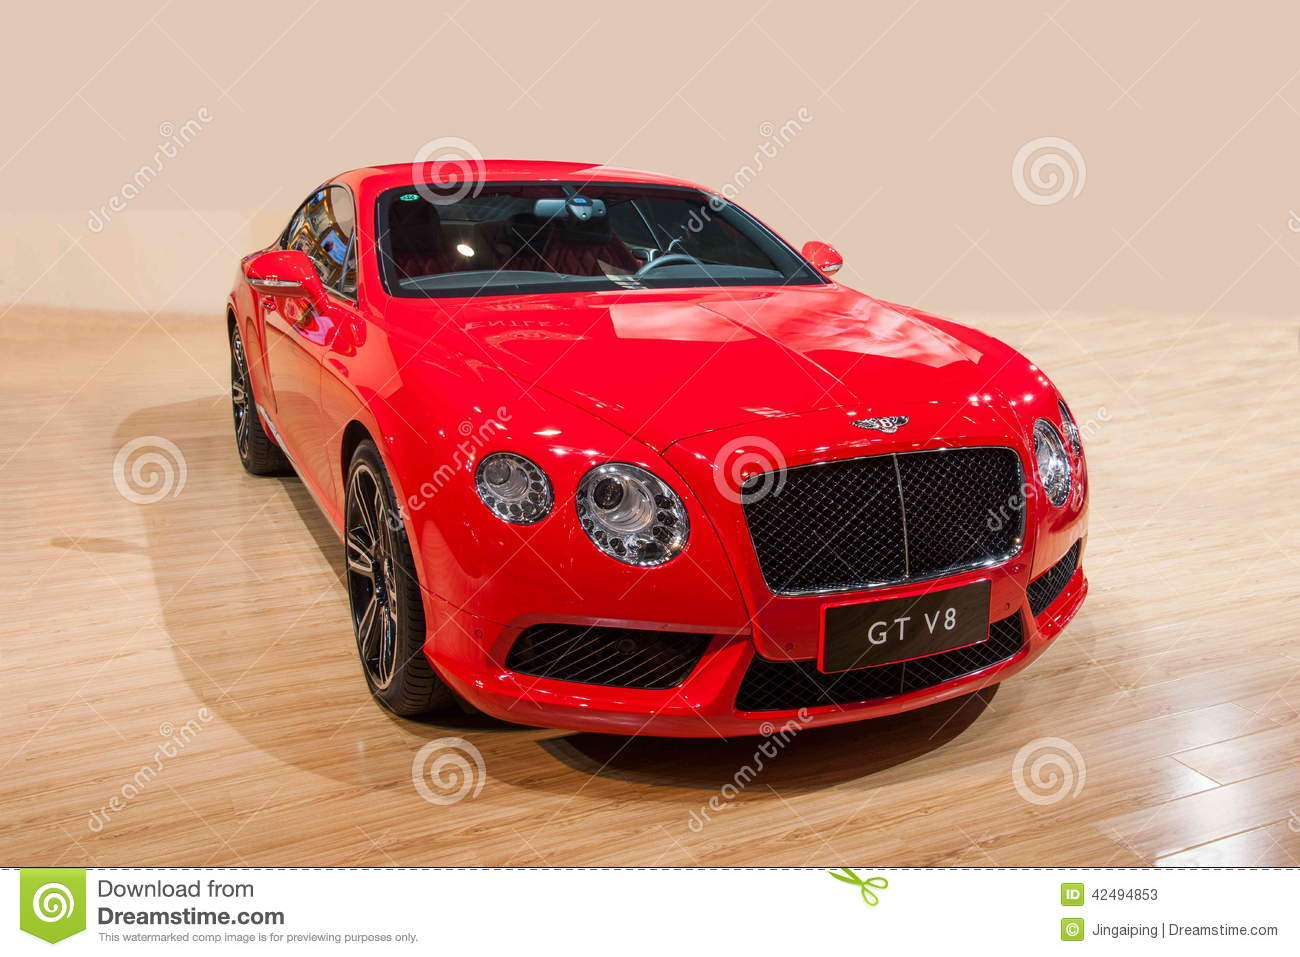 bentley series car chongqing auto show editorial stock photo - image